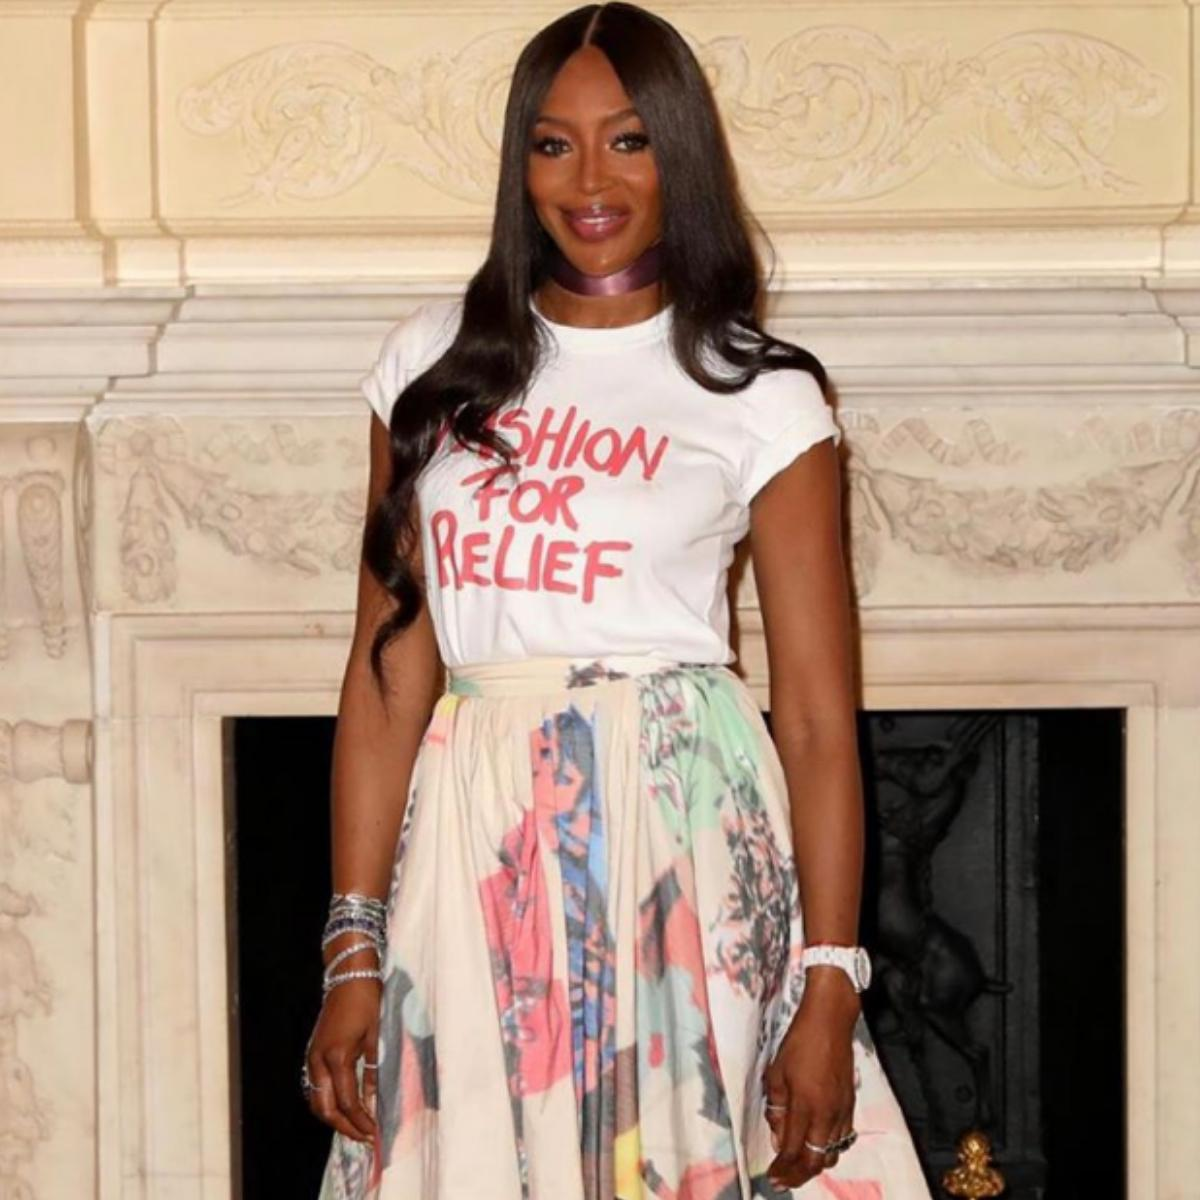 Hotel In Paris Turns Naomi Campbell Away Because Of Skin Colour